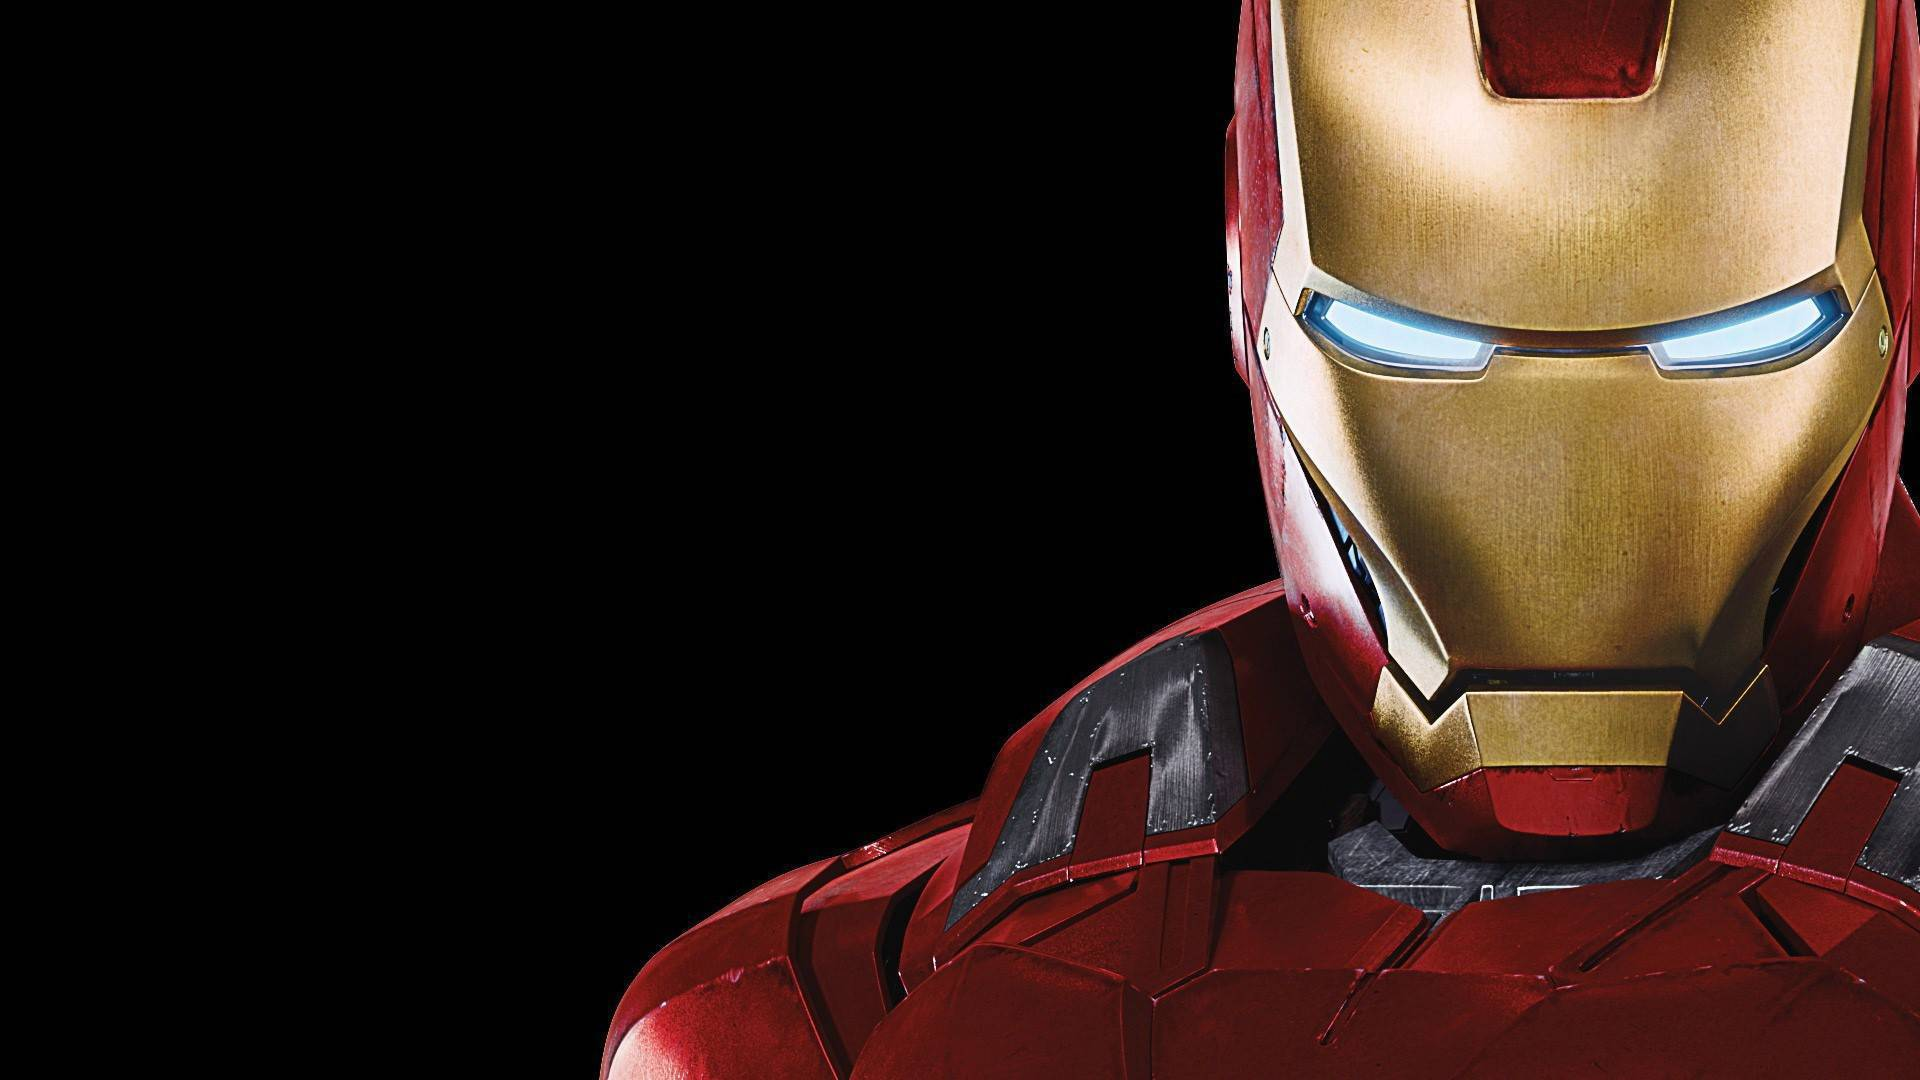 Fondos De Pantalla Wallpapers Gratis Iron Man Wallpaper